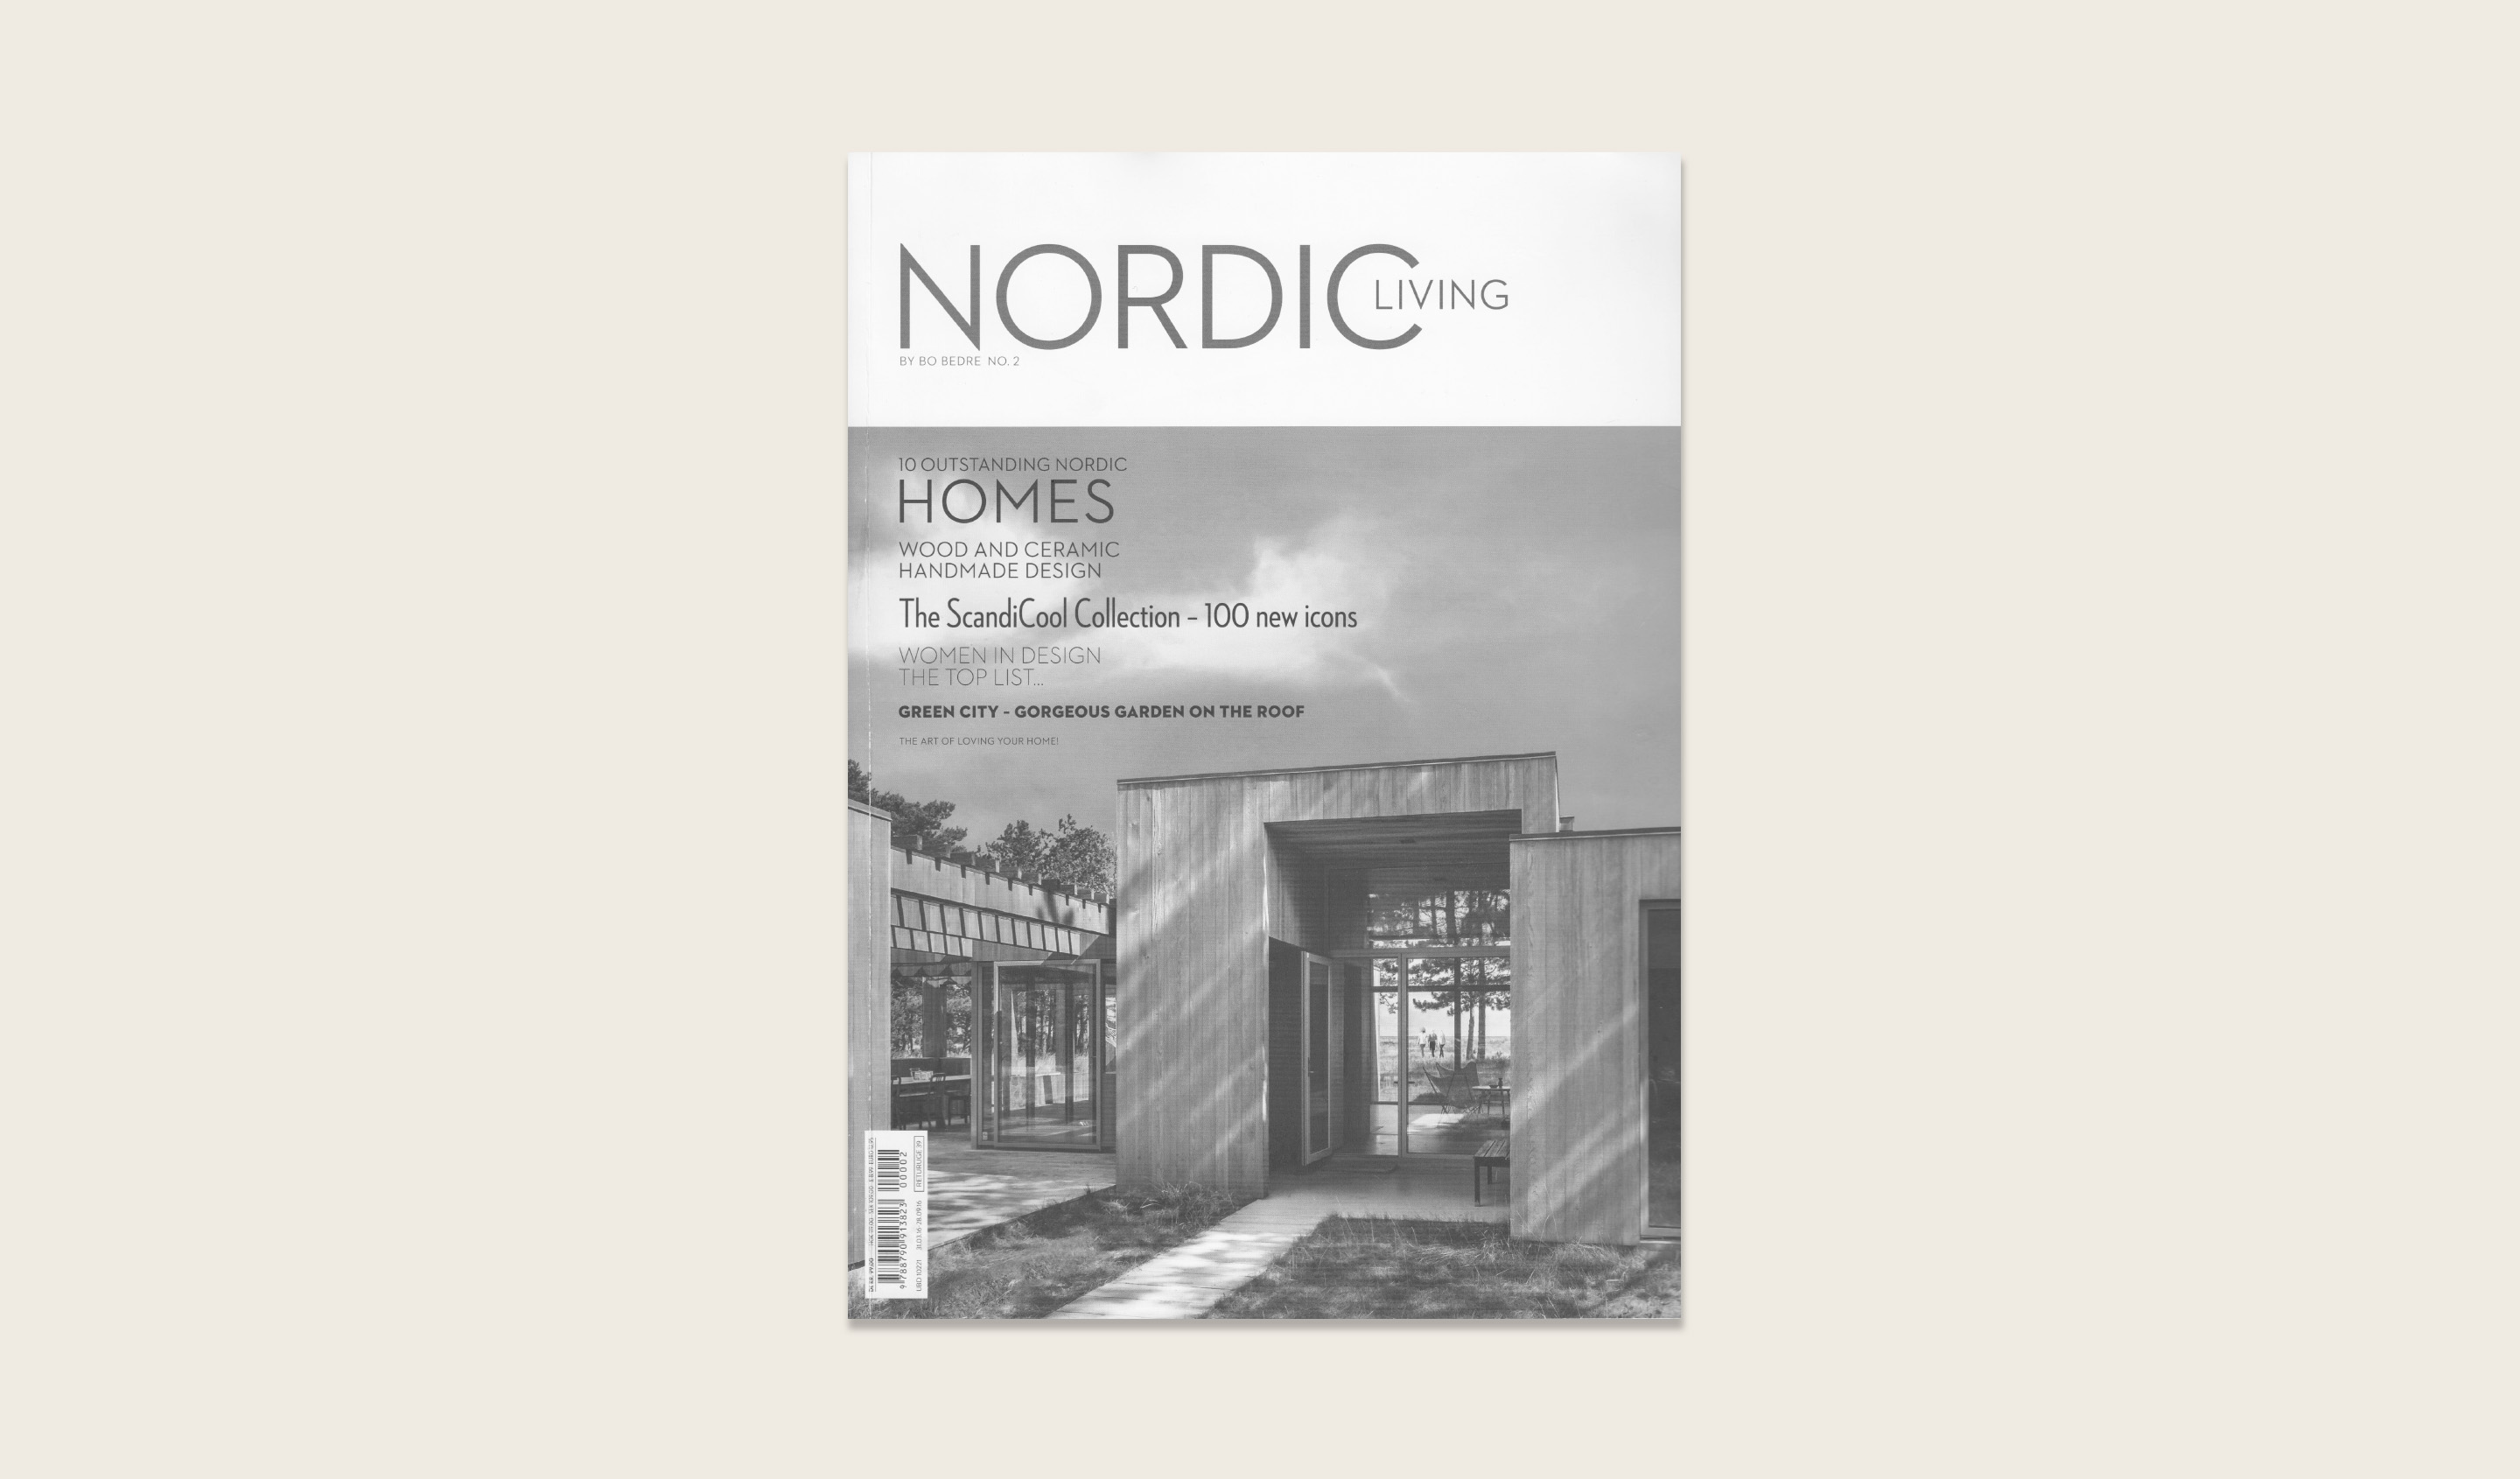 bodilkjaer_blog_nordicliving_01